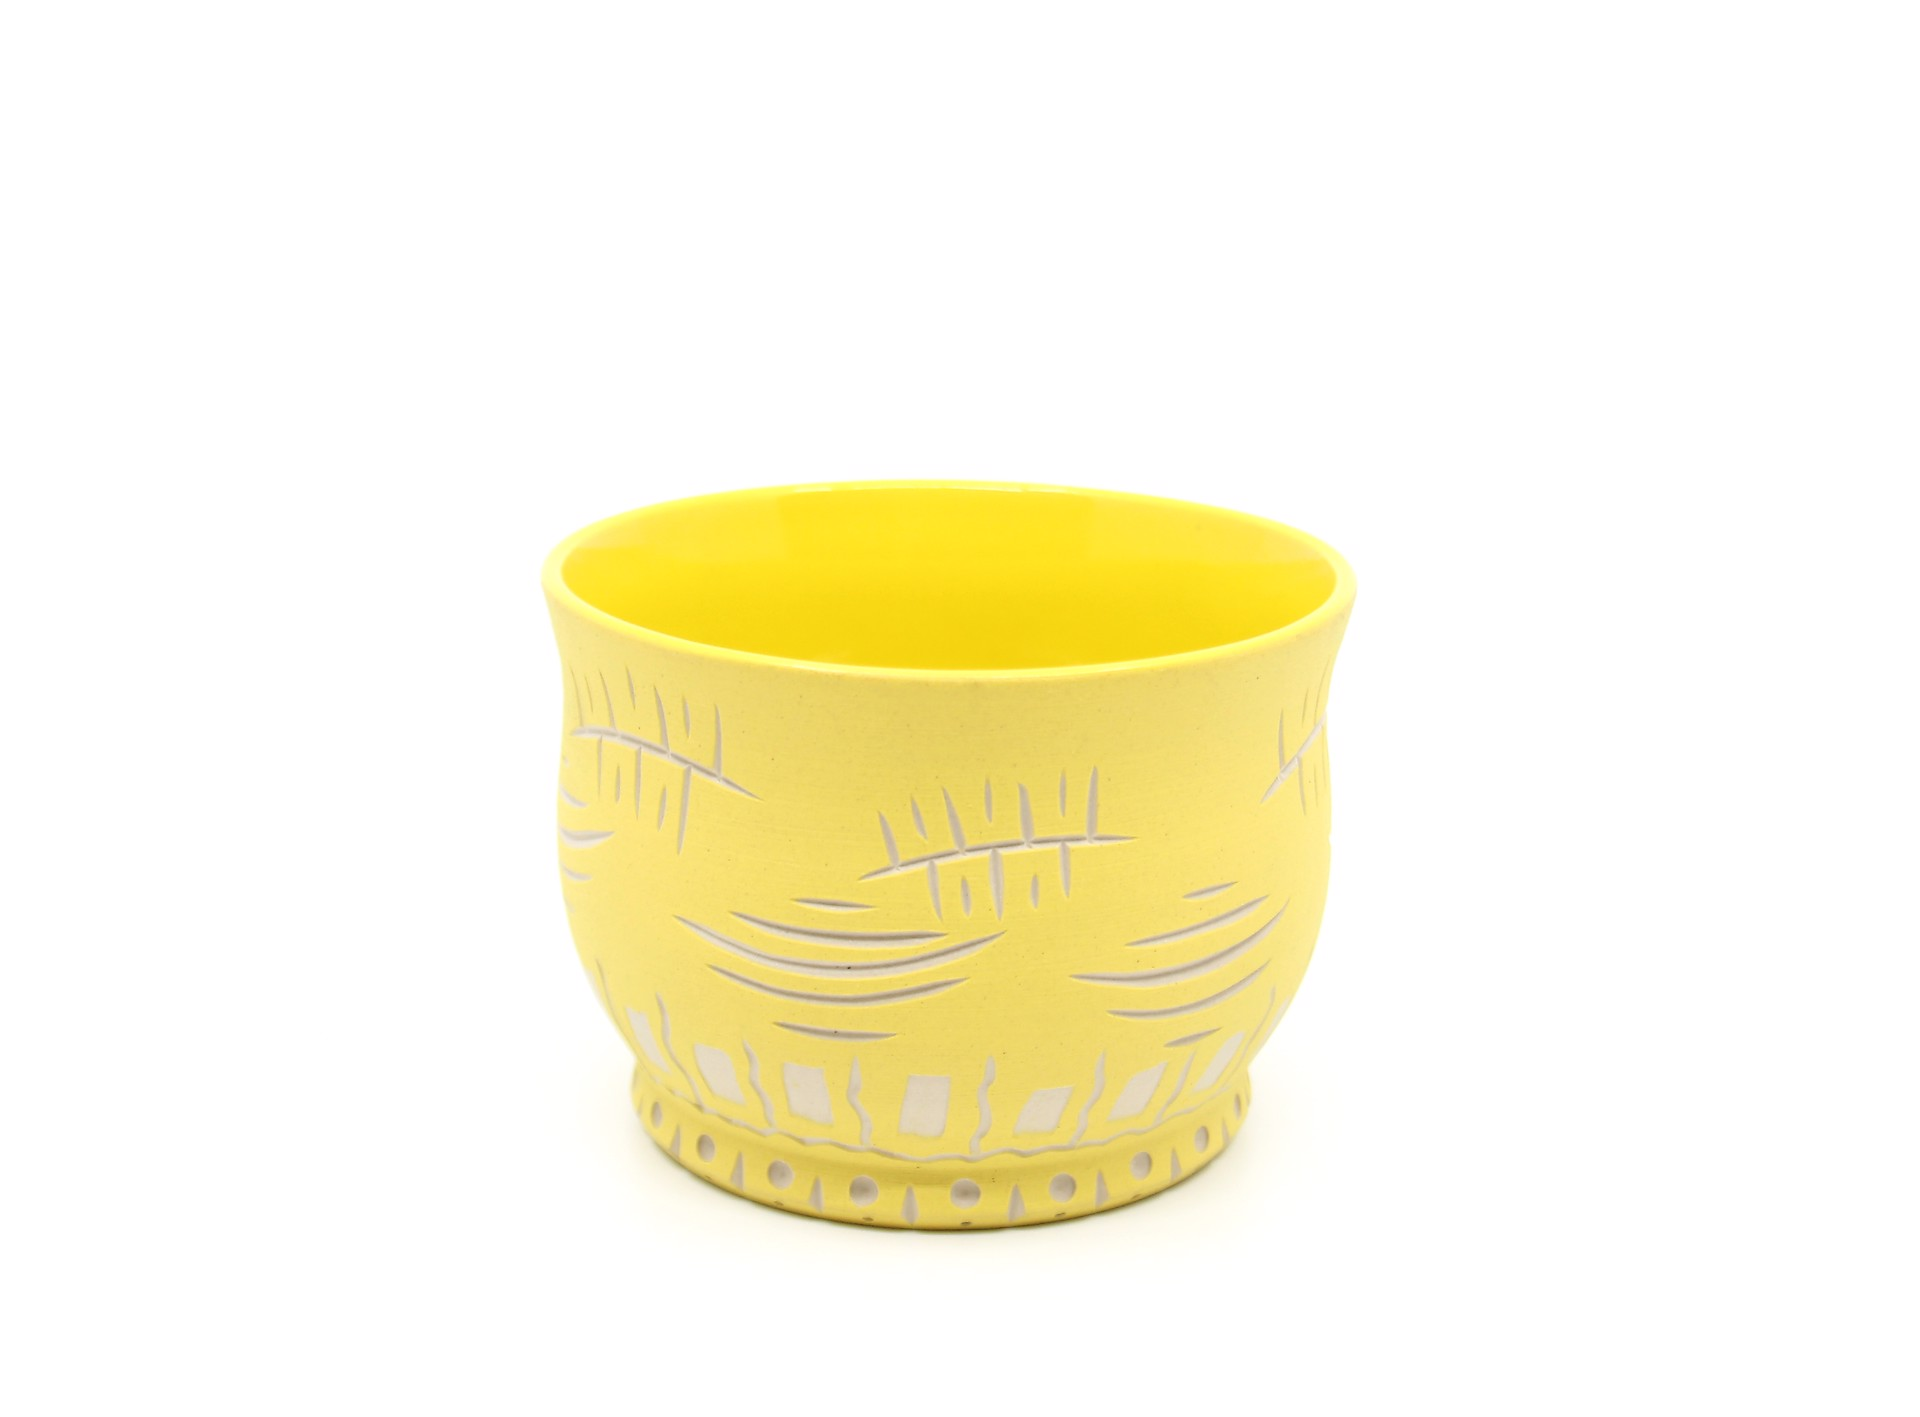 Small Yellow Bowl by Chris Casey